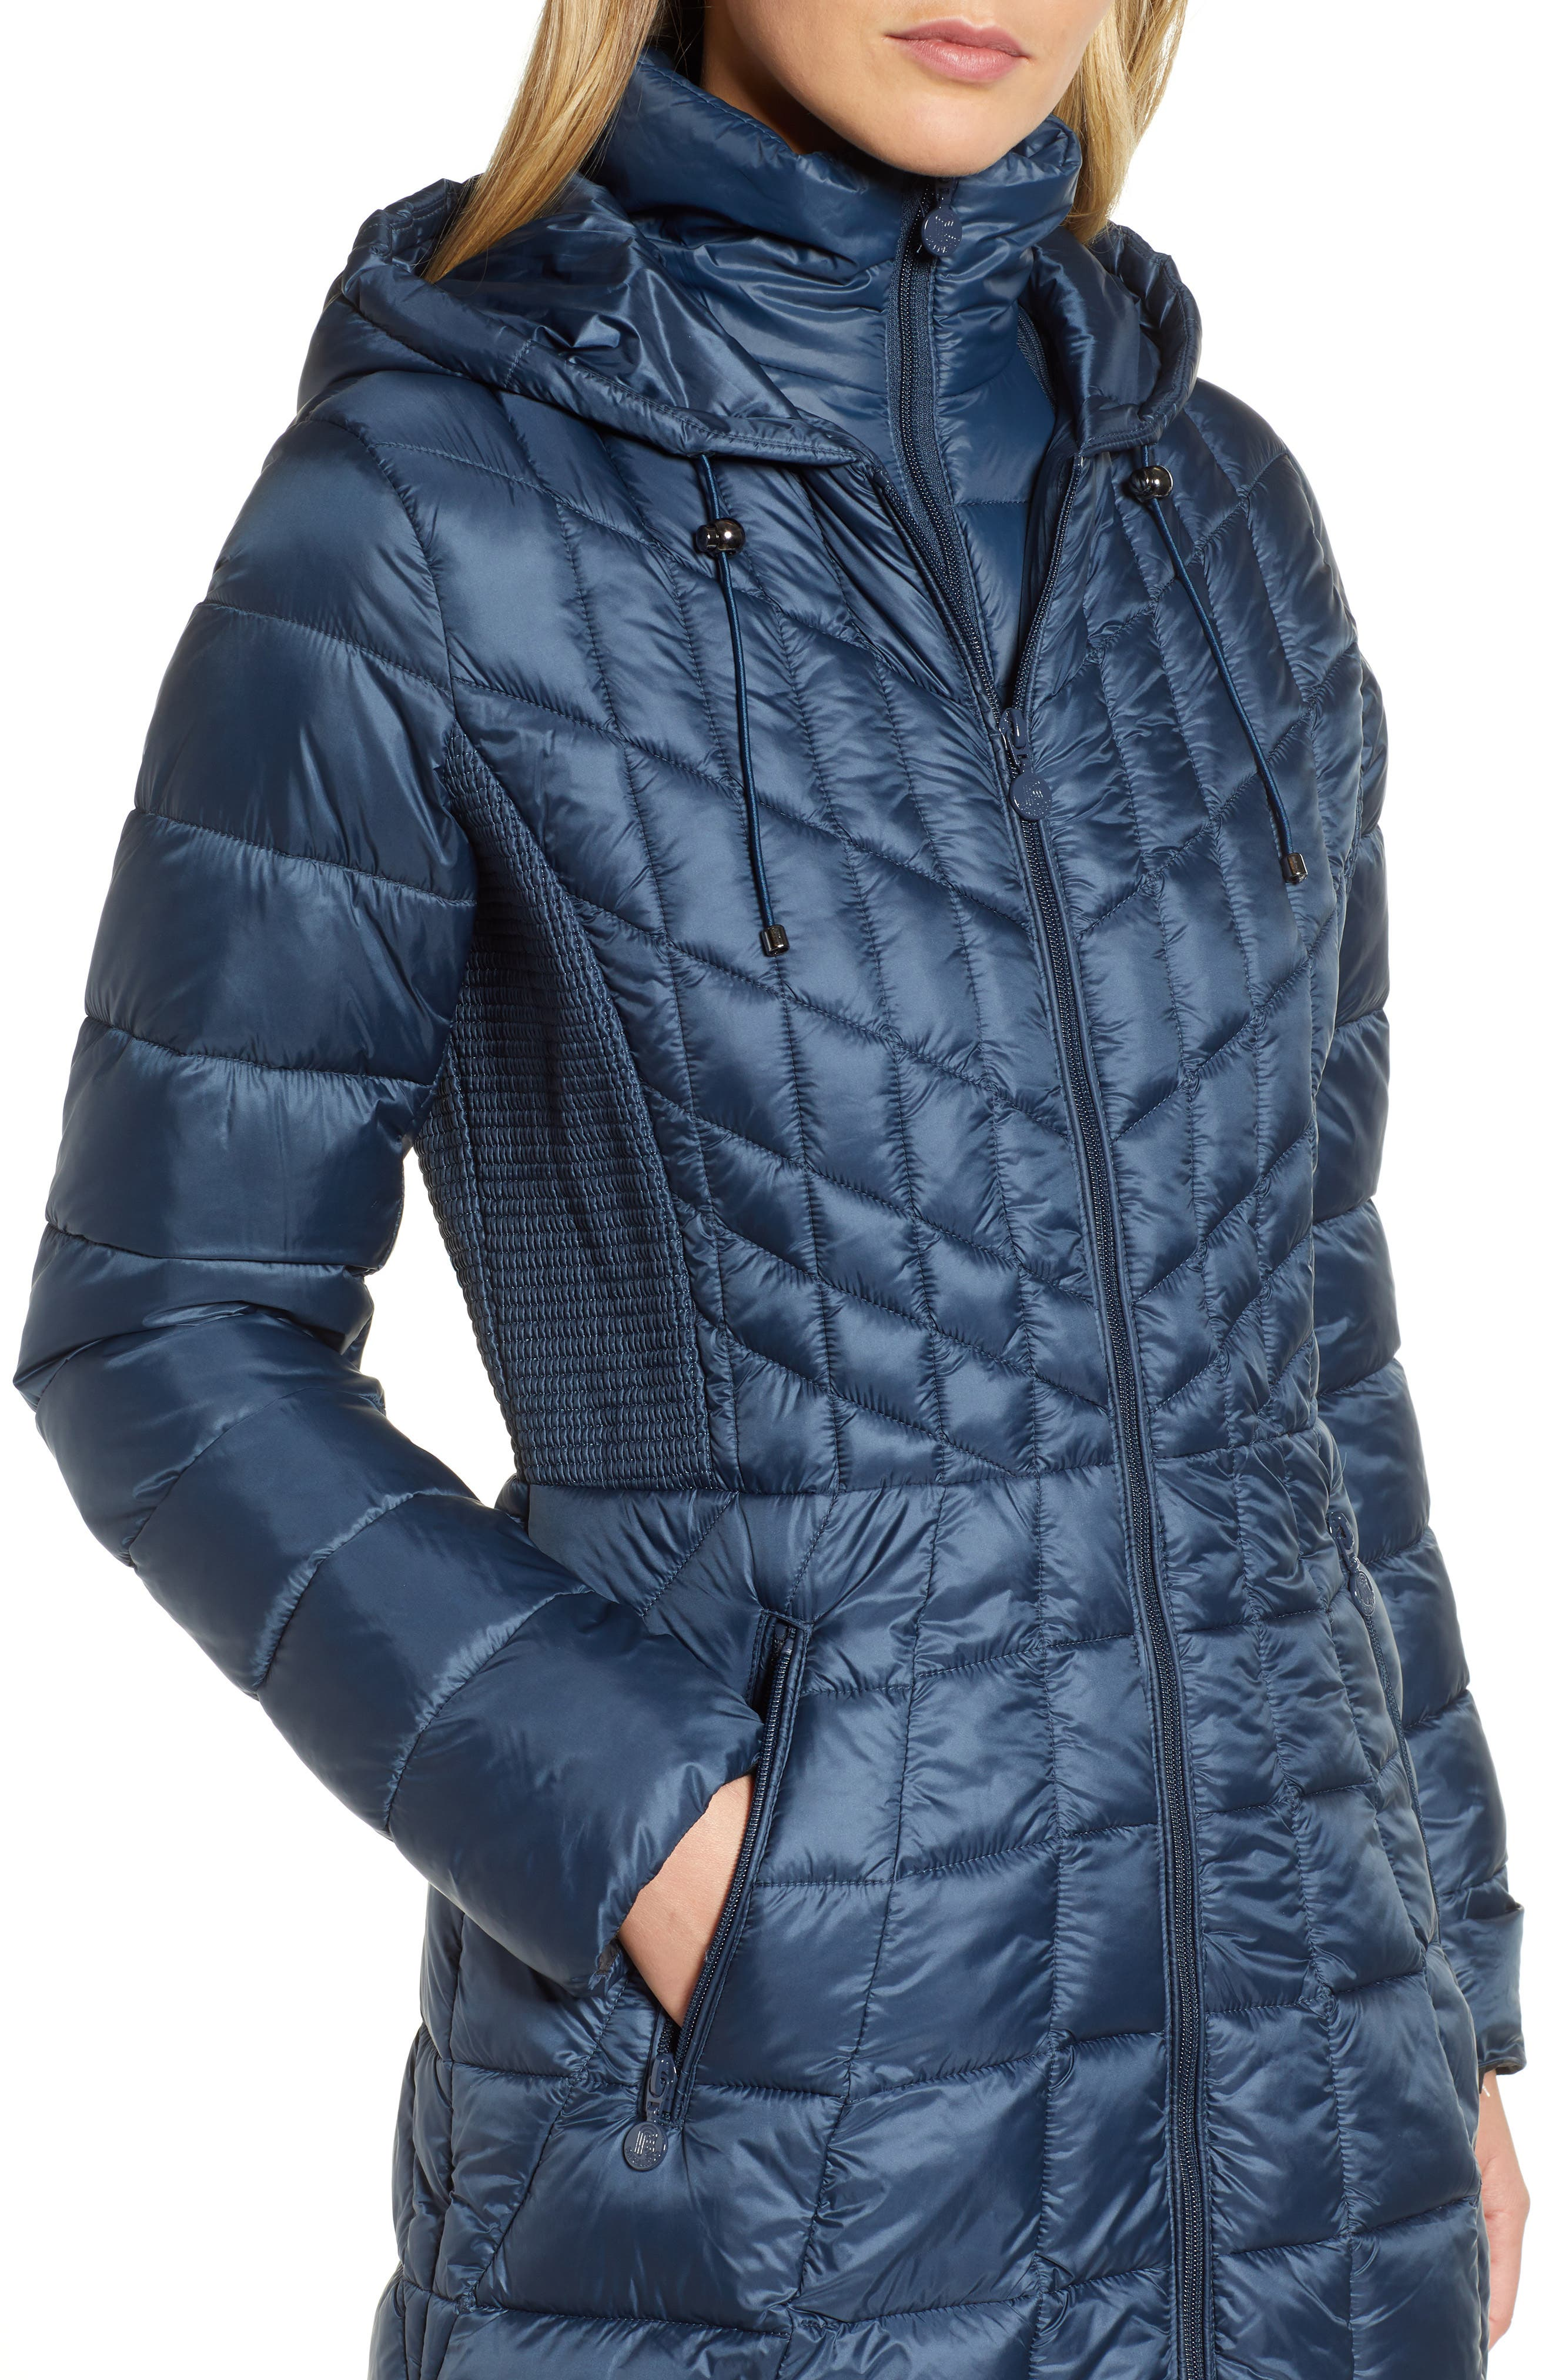 Packable Hooded PrimaLoft<sup>®</sup> Fill Coat with Contrast Inset Bib,                             Alternate thumbnail 6, color,                             300